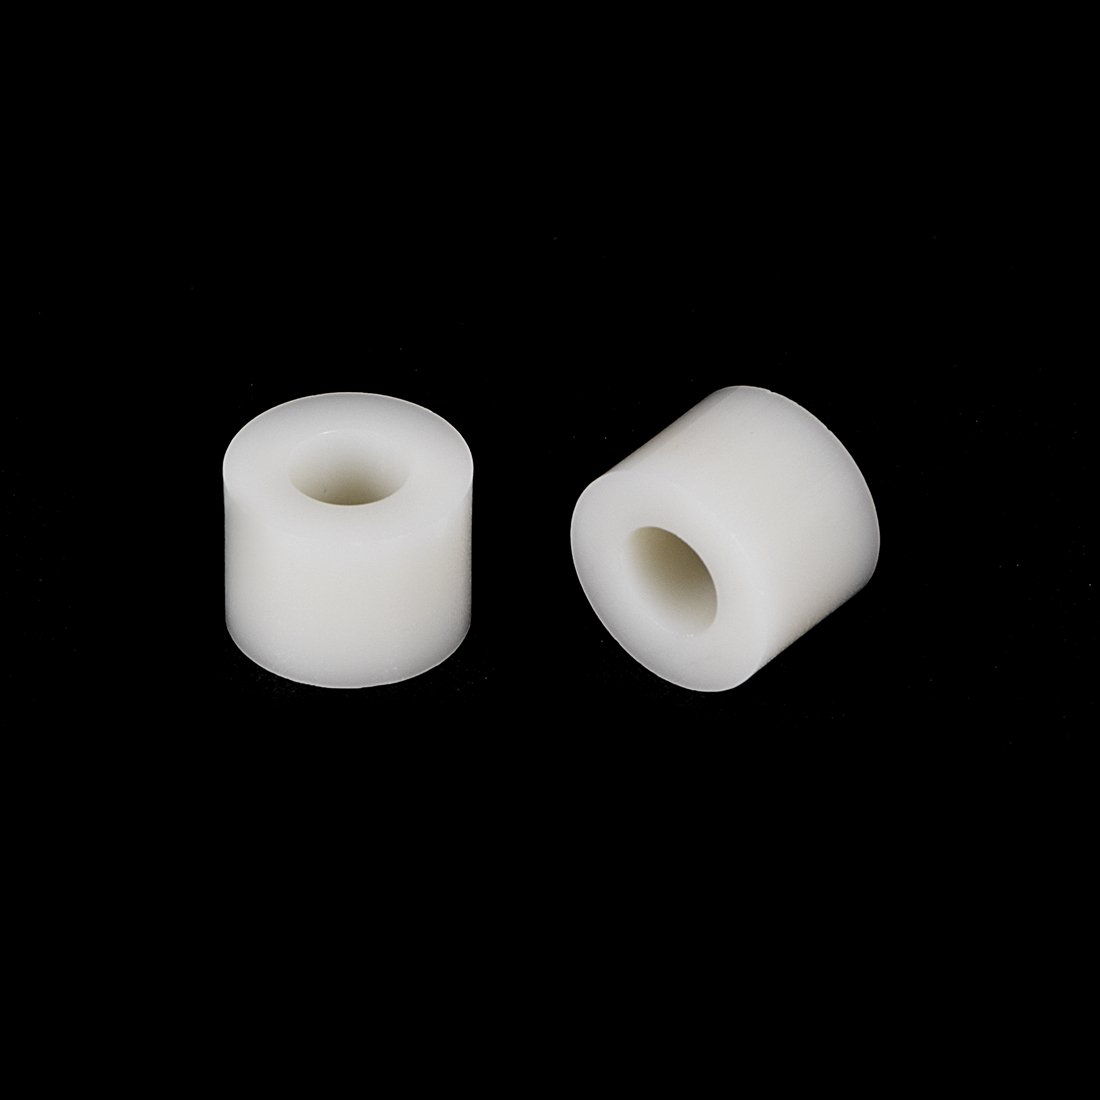 uxcell Round Spacers Washers for M3 Screws ABS OD 7m ID 4mm Height 6mm50pcs